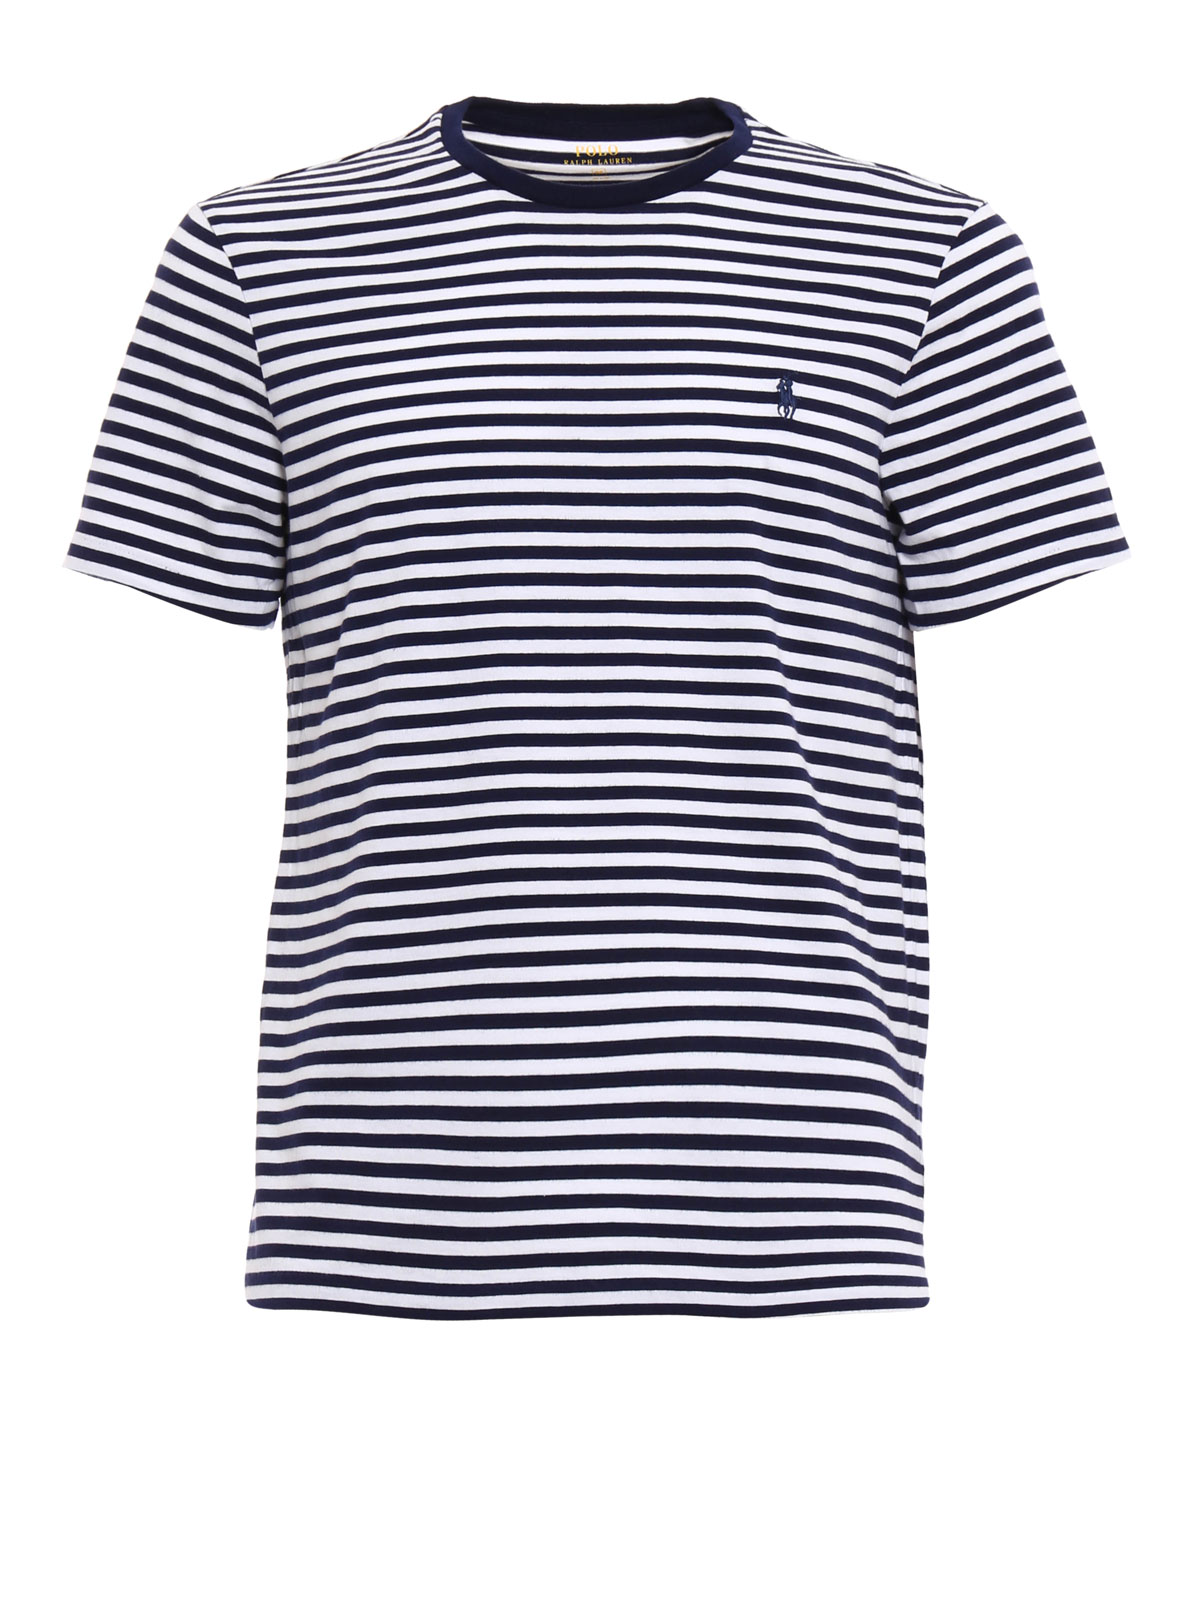 Striped cotton t shirt by ralph lauren shirts ikrix